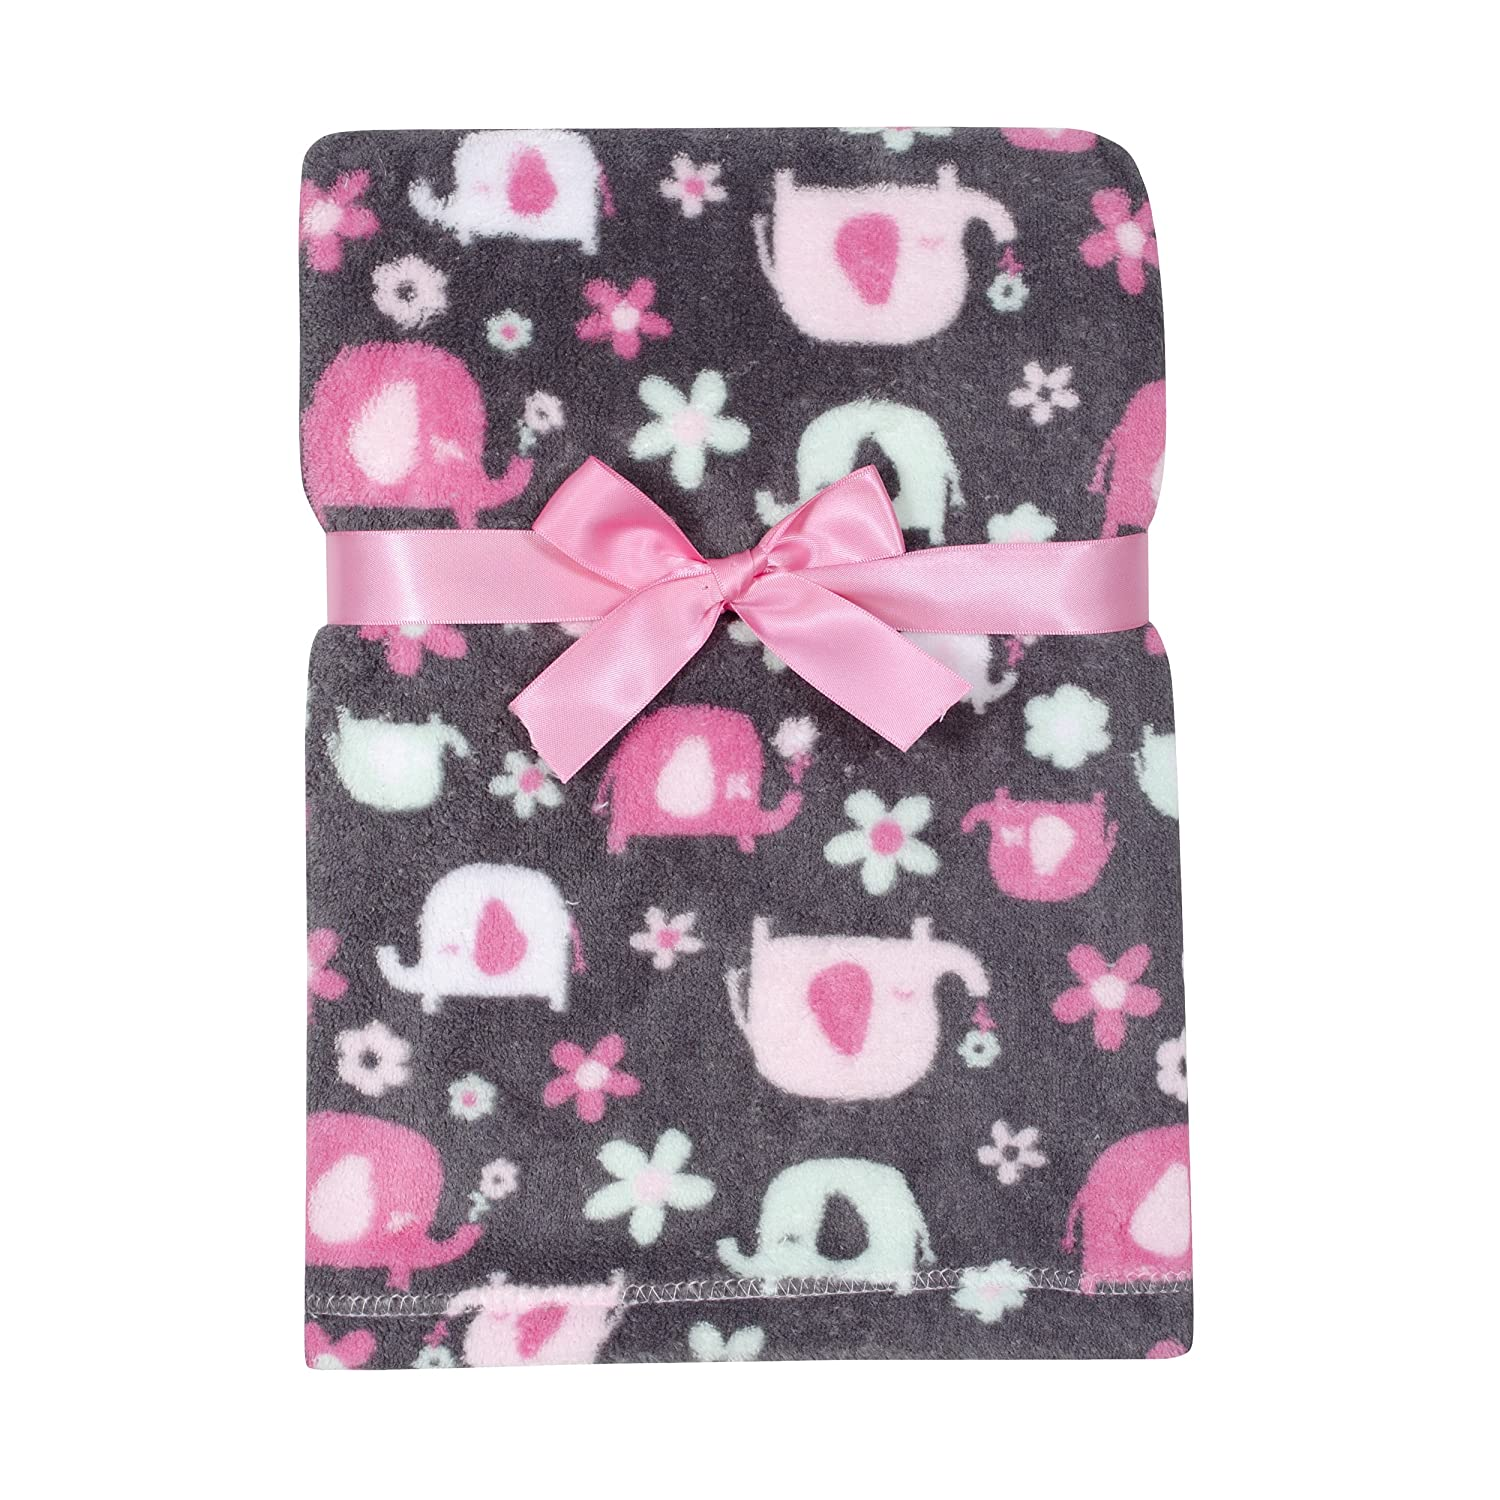 Baby Gear Plush Velboa Ultra Soft Baby Girls Blanket 30 x 40, Pink Elephants Cutie Pie Baby